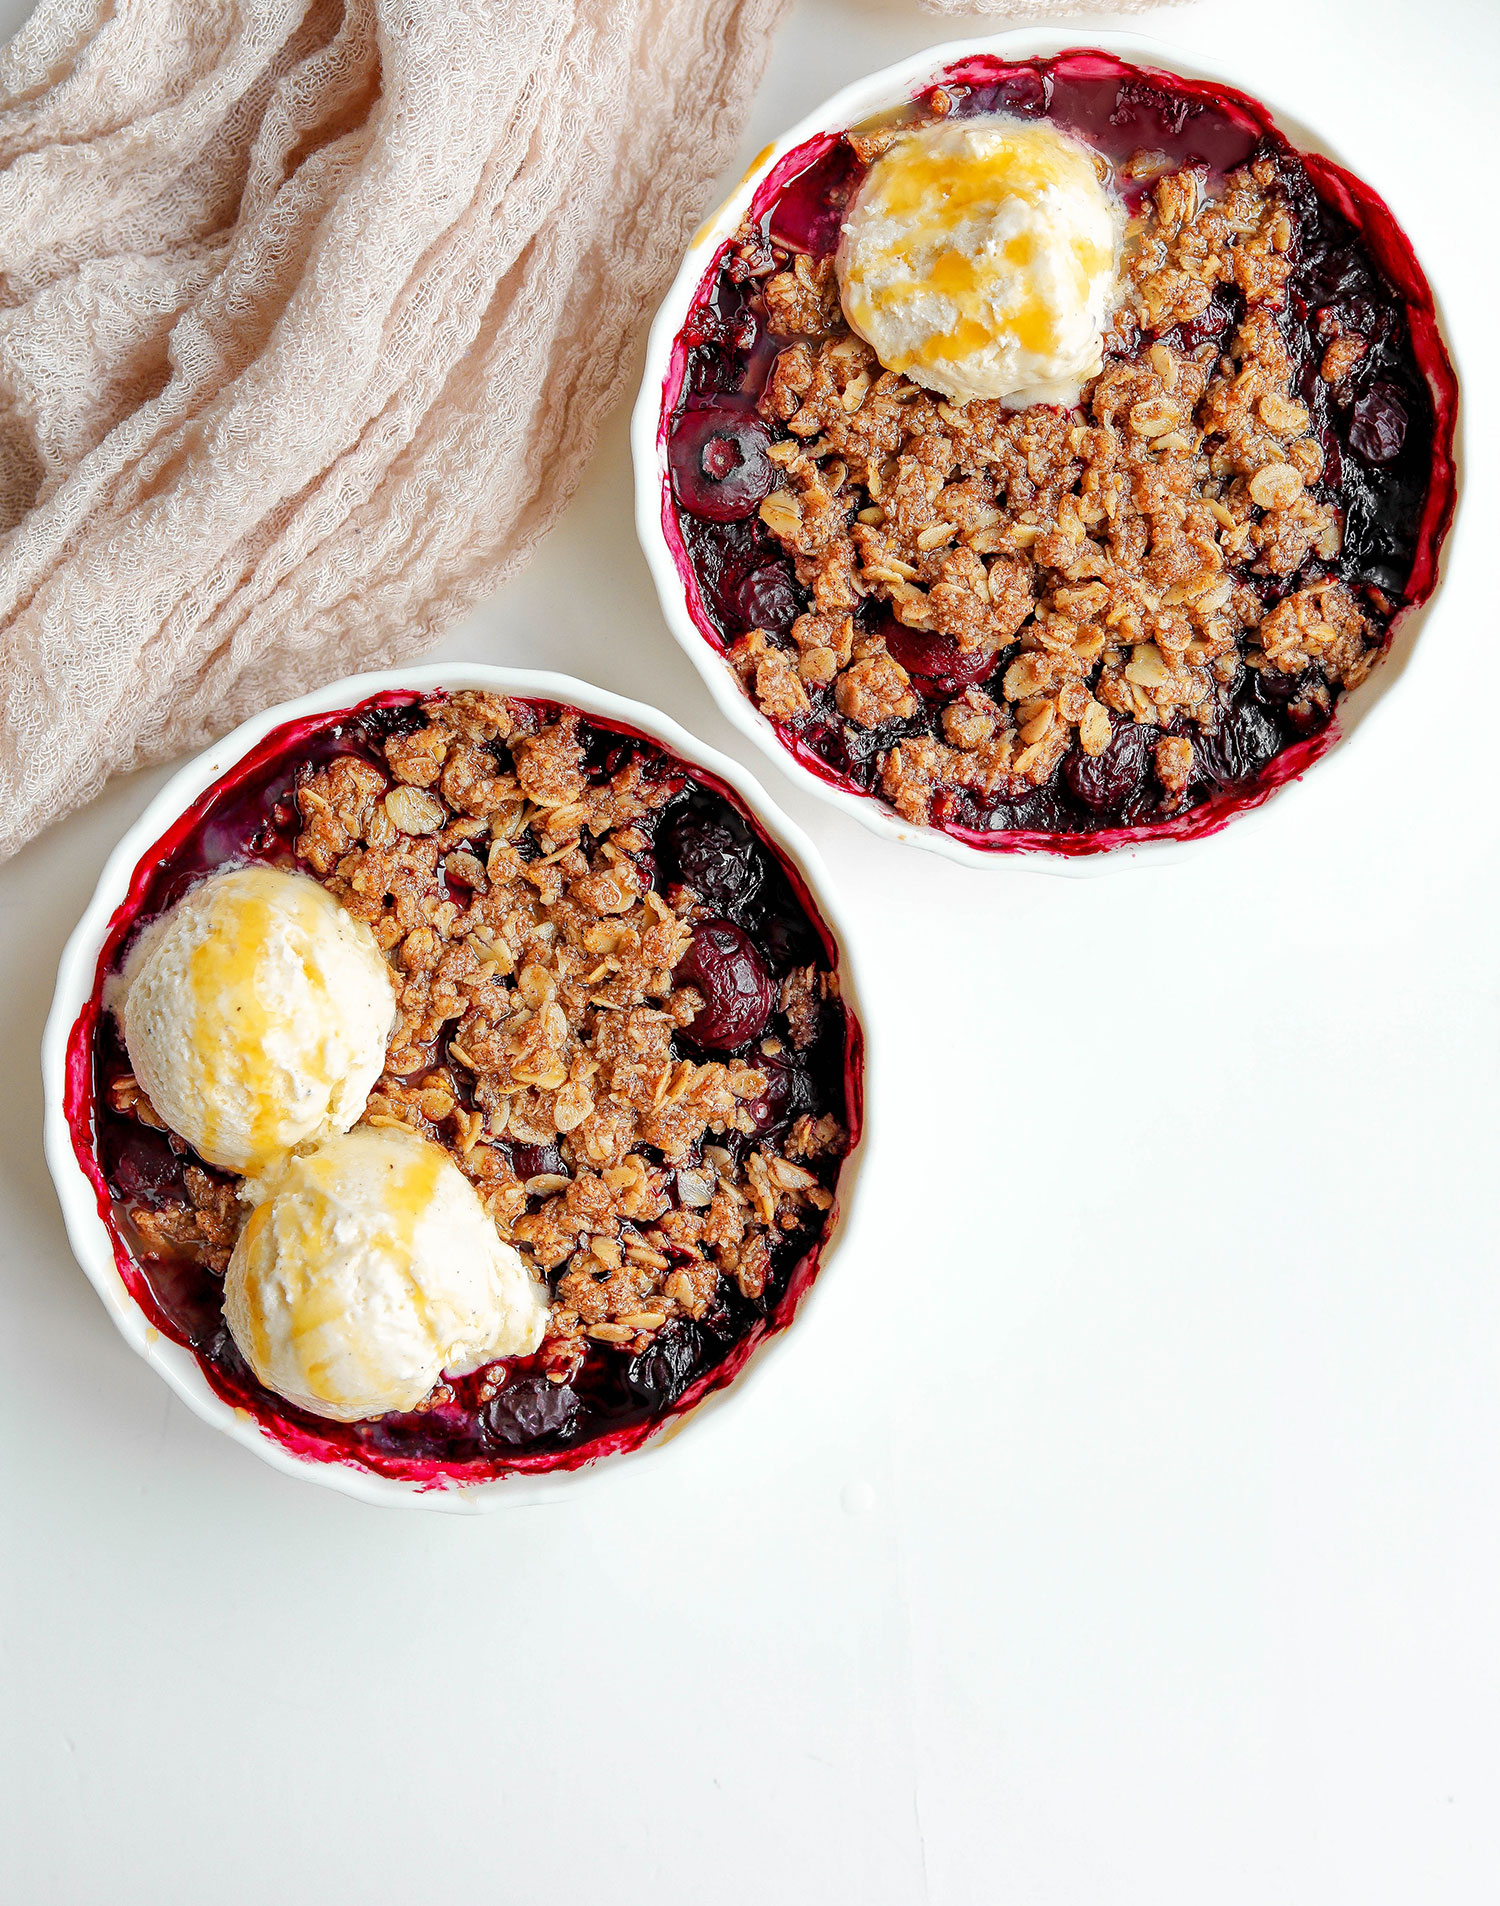 Vegan Gluten-free Blueberry Crumble